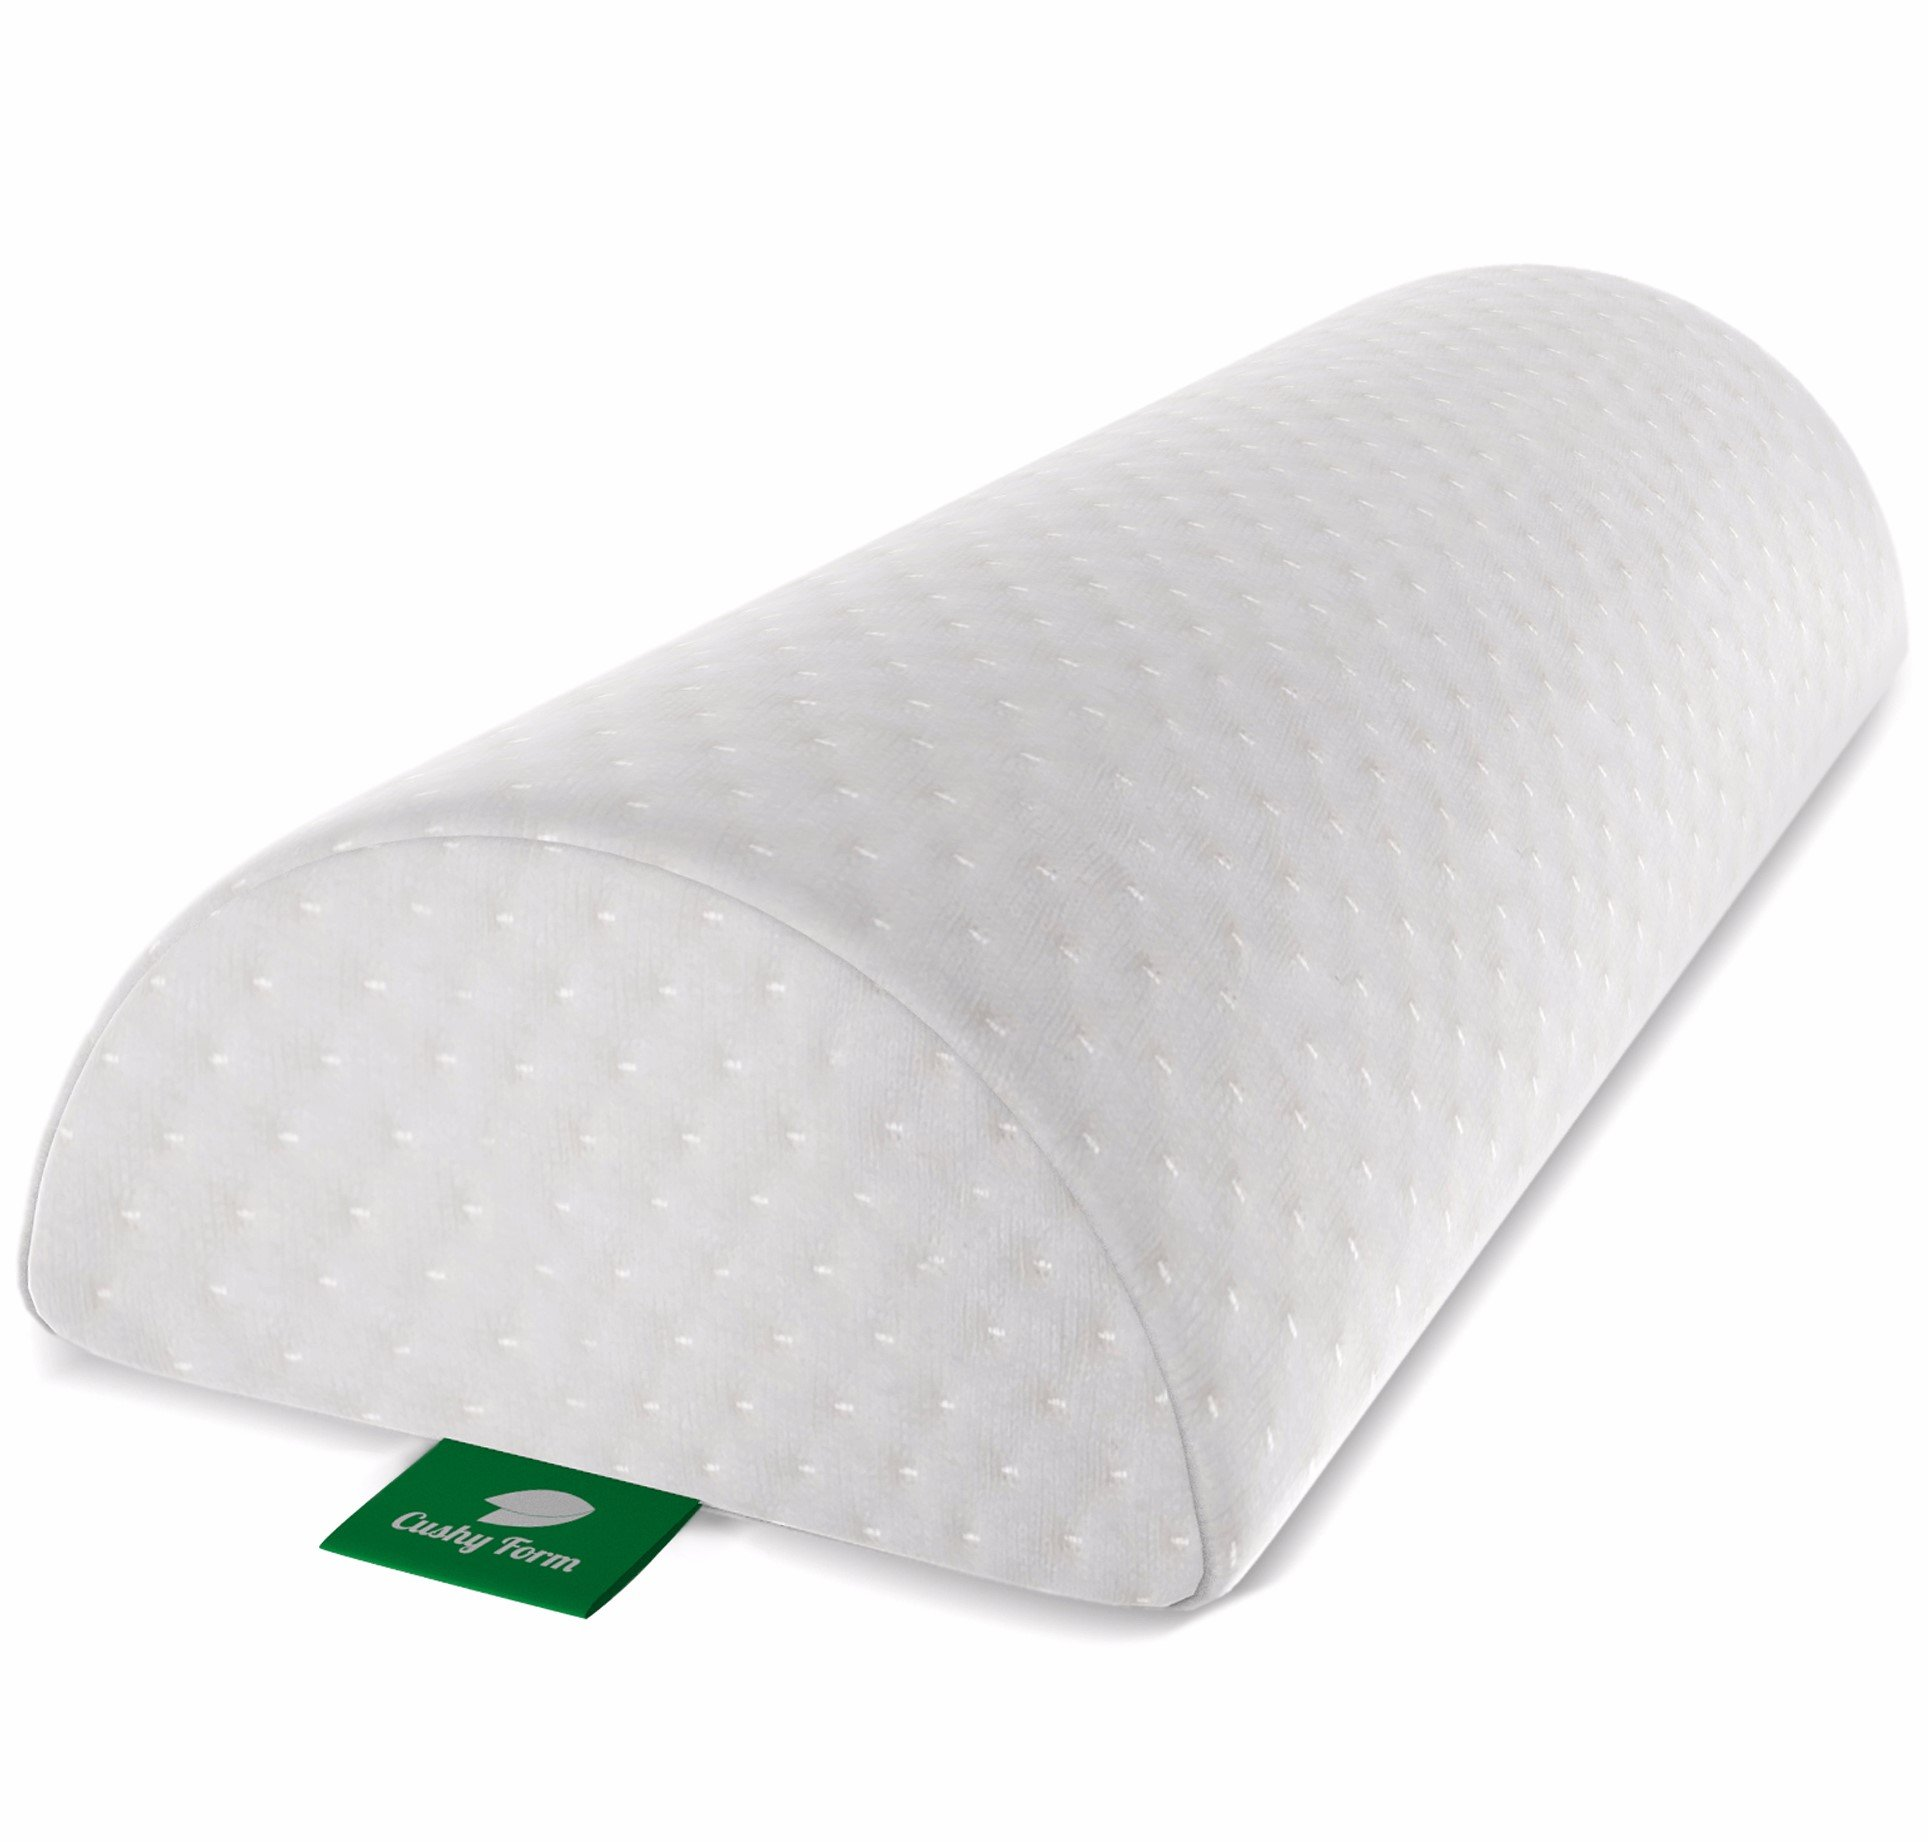 Cushy Form Back Pain Relief Half-Moon Bolster/Wedge - Provides Best Support for Sleeping on Side or Back - Memory Foam Semi-Roll Leg/Knee Pillow with Washable Organic Cotton Cover (Large, White)